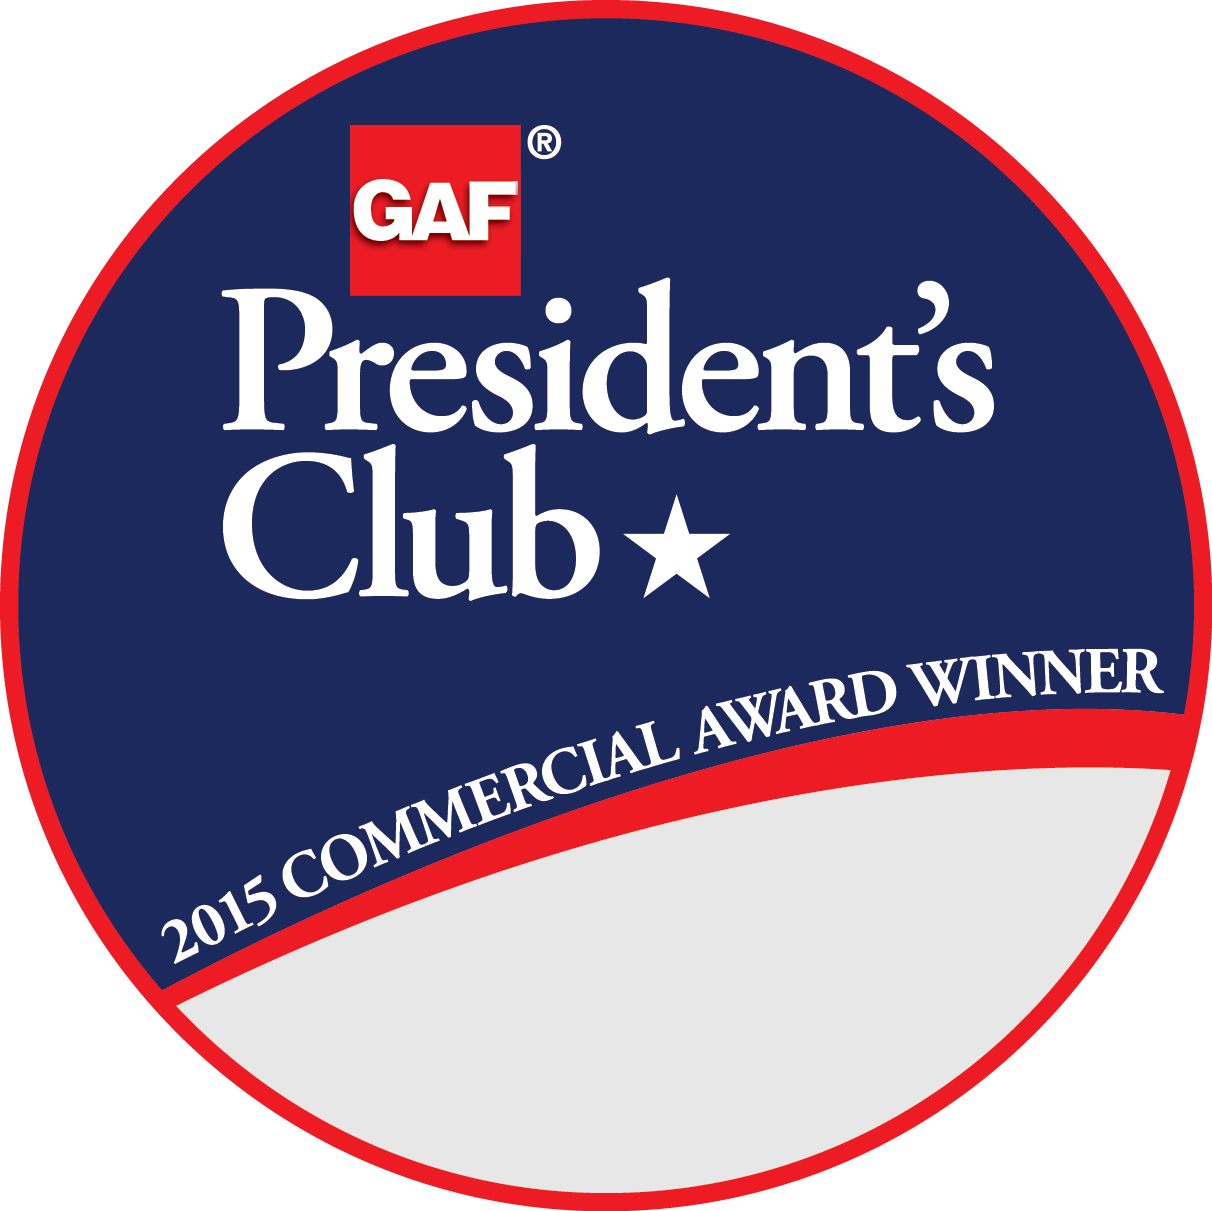 Commerical Presidents Club_2015-1 Stars PSI